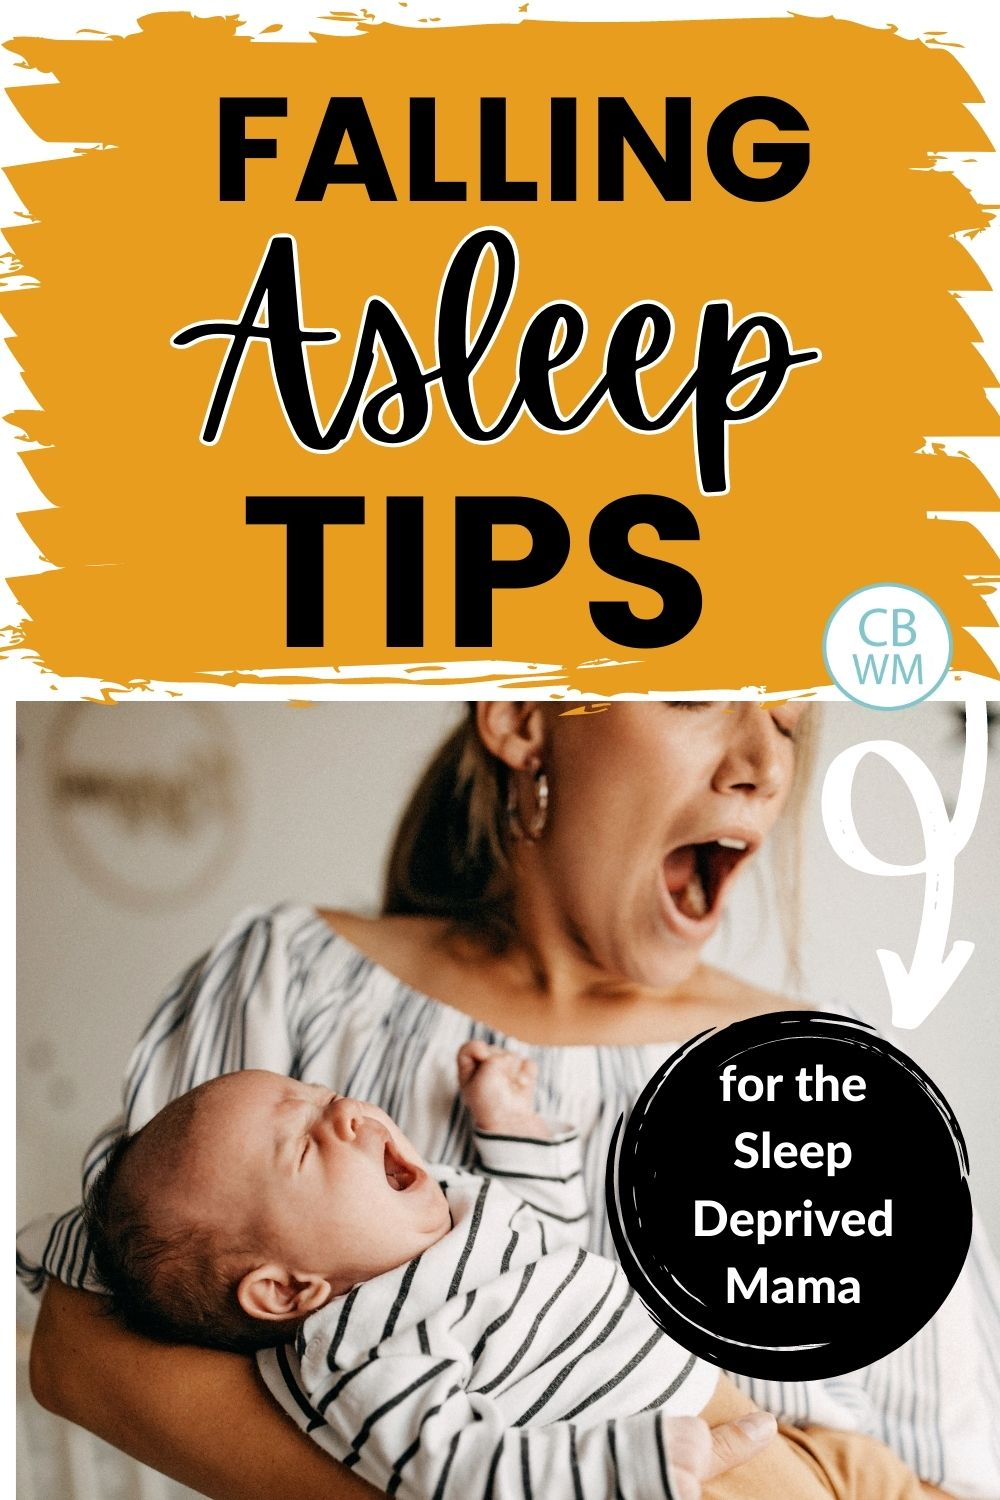 Falling asleep tips for moms